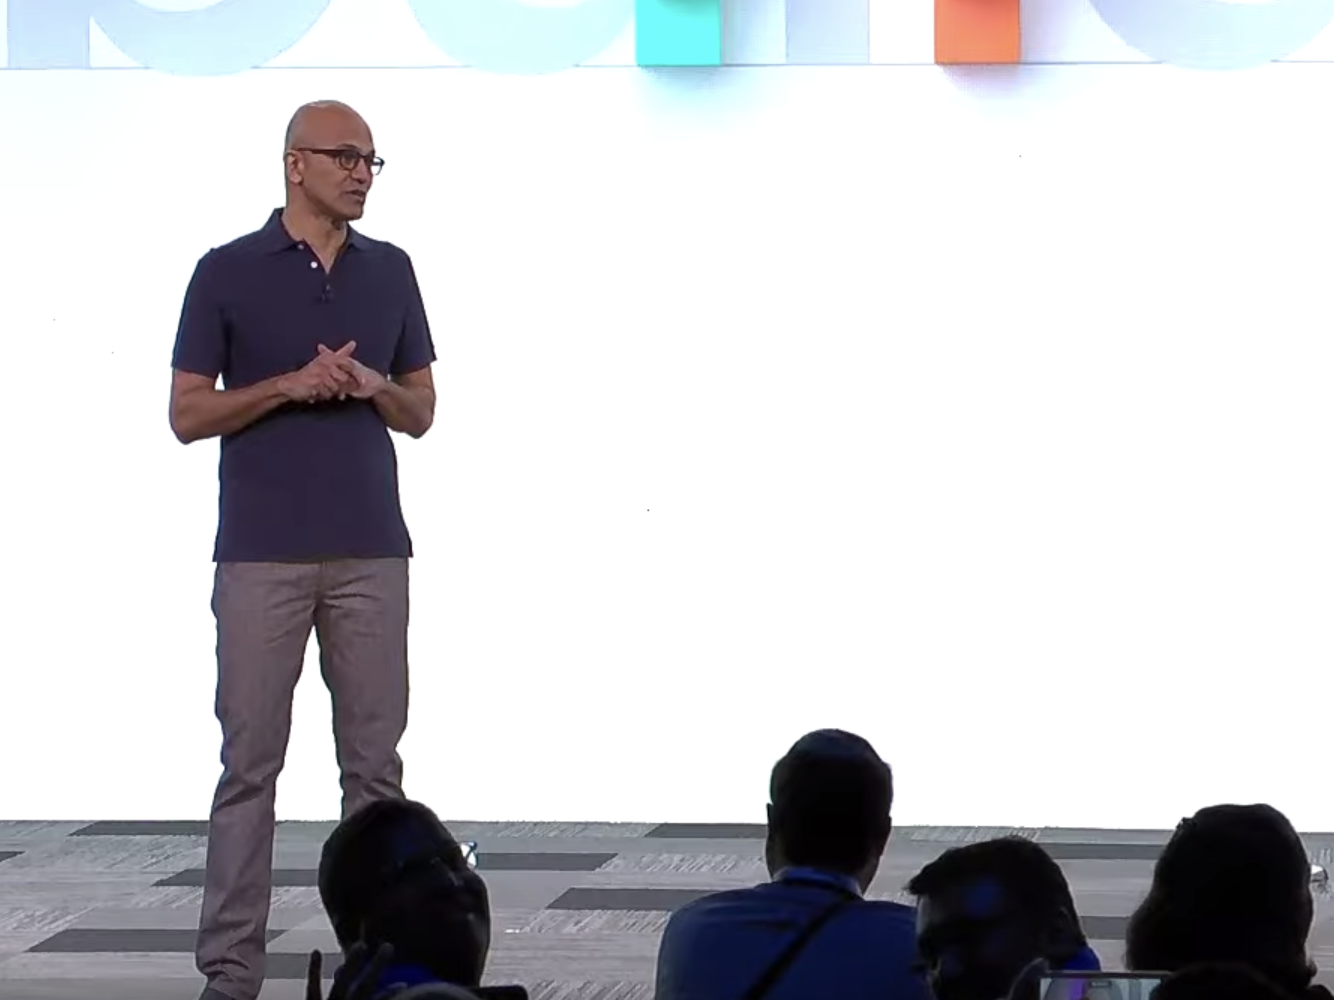 Microsoft CEO Satya Nadella presenting at the company's annual developer conference, Build 2019. Here, he announced several new open software projects with partners. Nadella hopes developers can be involved in Microsoft's open-source efforts.